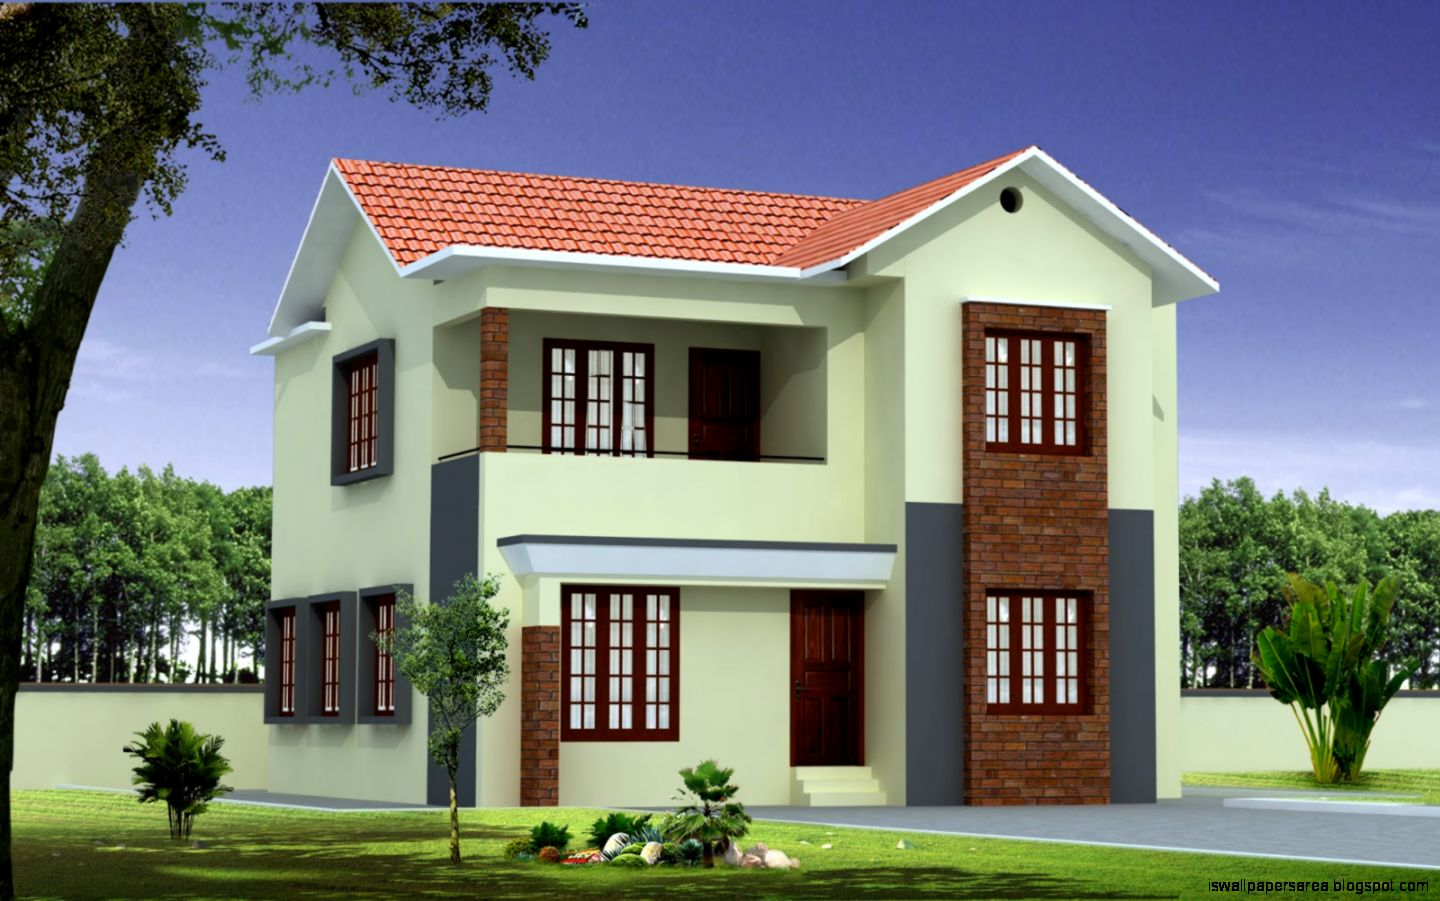 New home building designs wallpapers area for Latest house designs photos